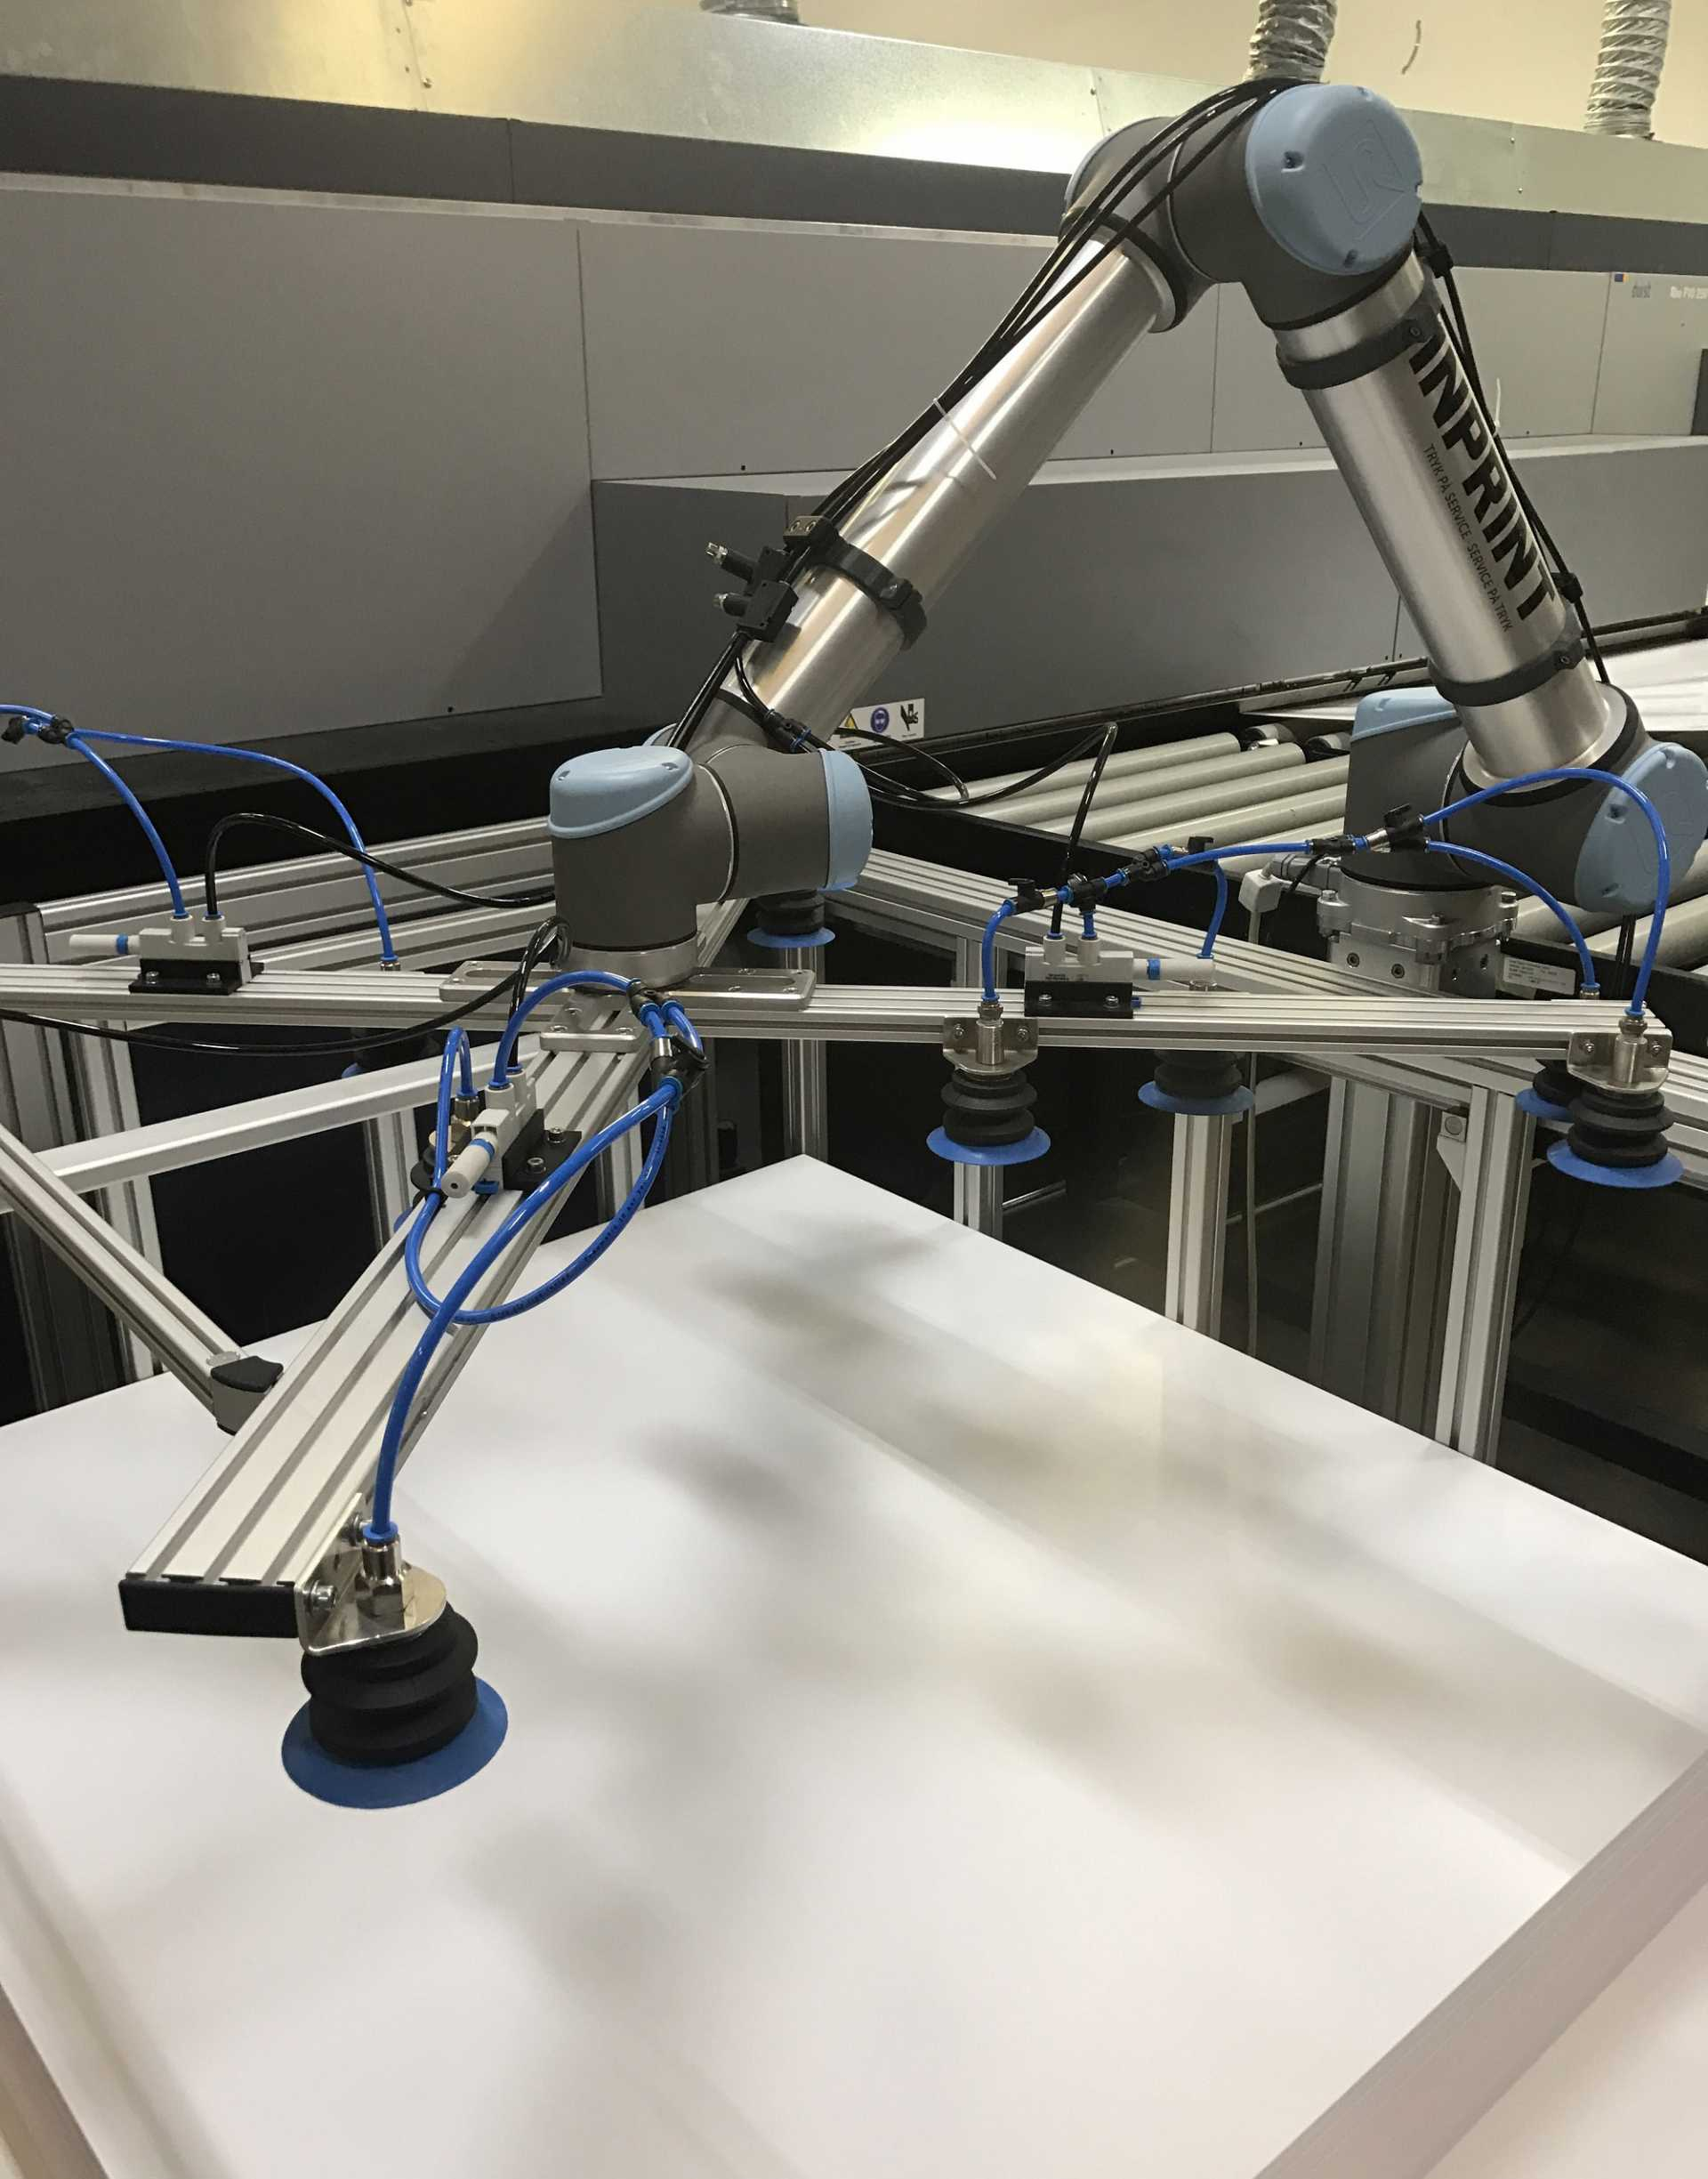 The collaborative pick and place robot robot arm automates processes and manual tasks, where precision is crucial – image courtesy of Universal Robots.